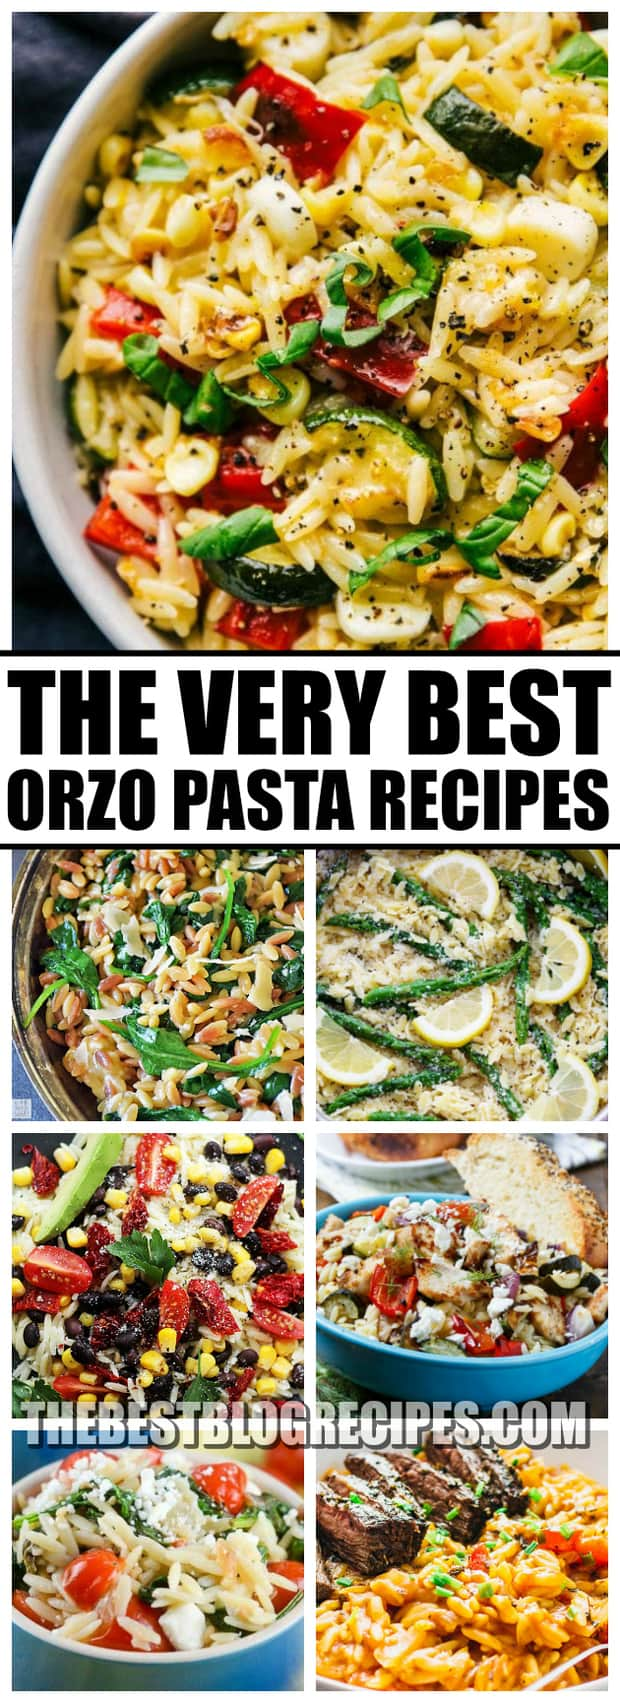 The Best Orzo Pasta Recipes